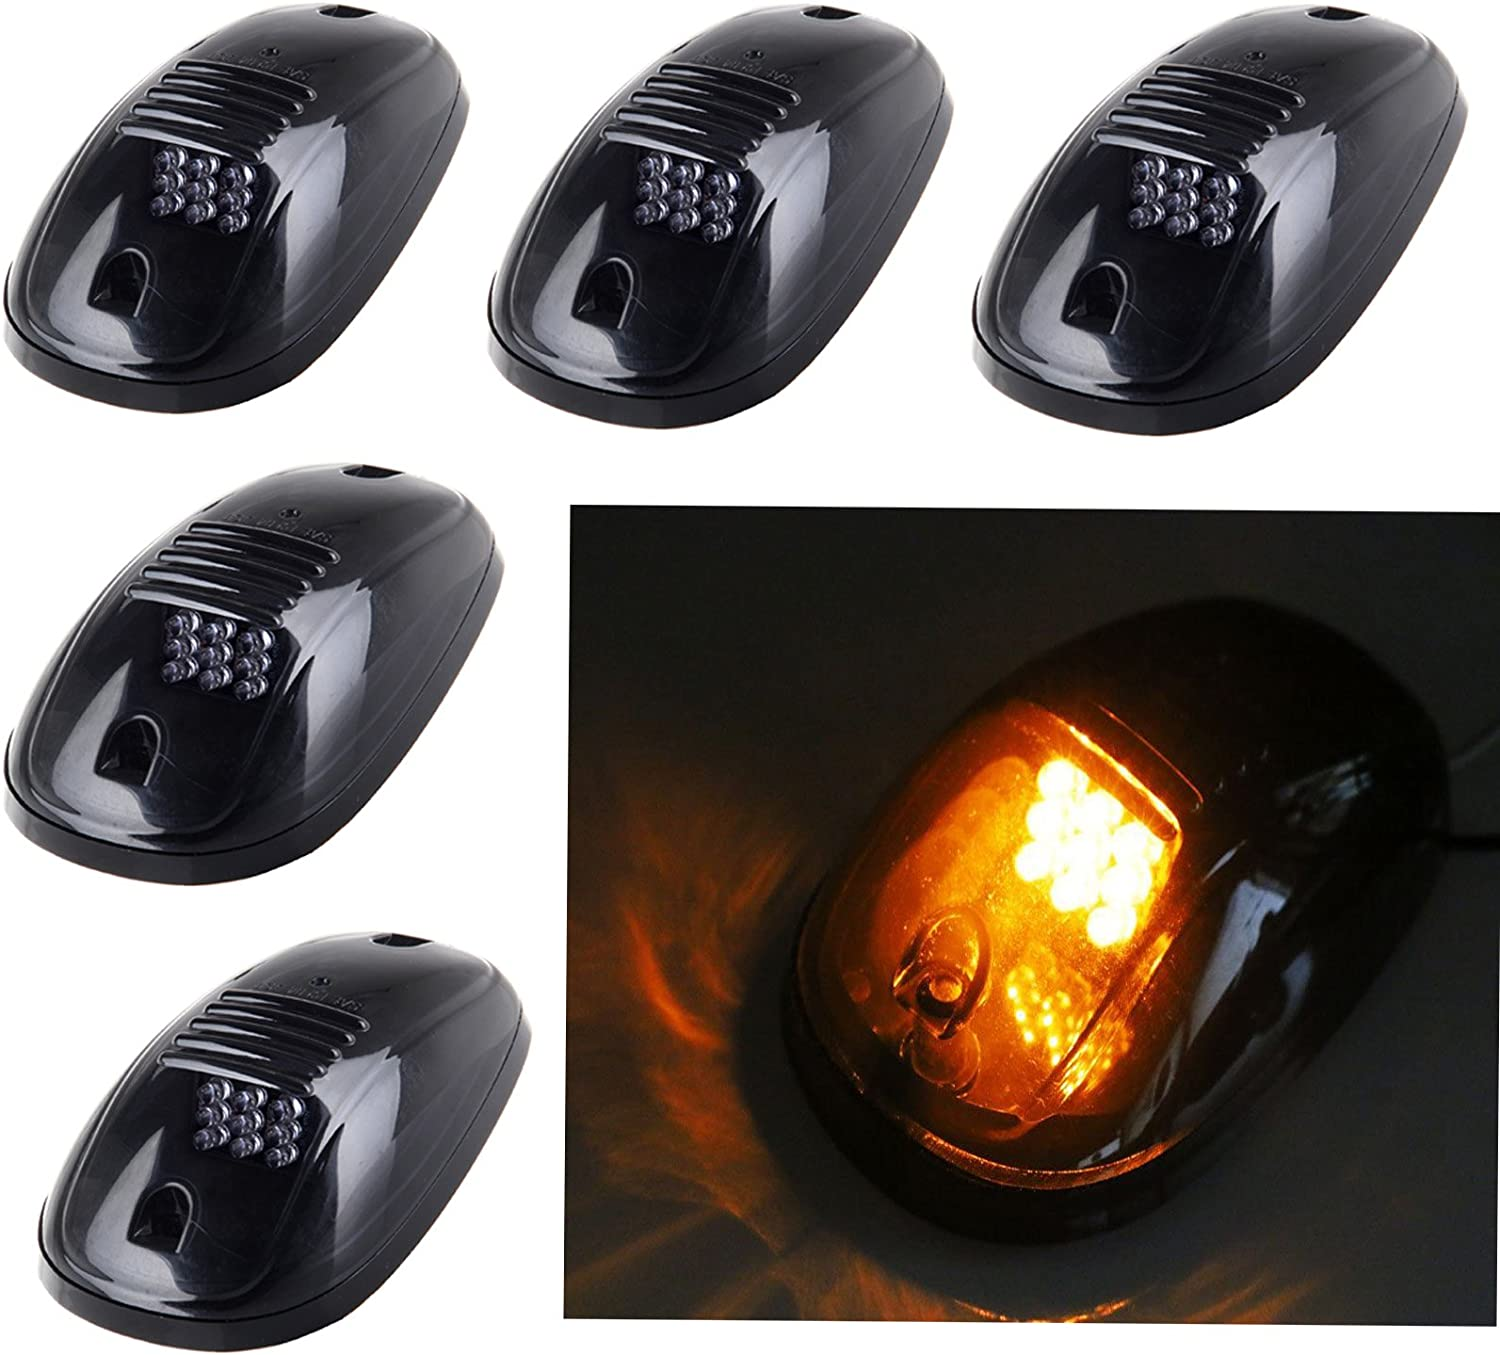 5pcs Amber 9 LED Smoke Cab Roof Top Running Marker Lights lamp 82211190AB w// Switch Wiring Kit for 2003-2016 Dodge Ram